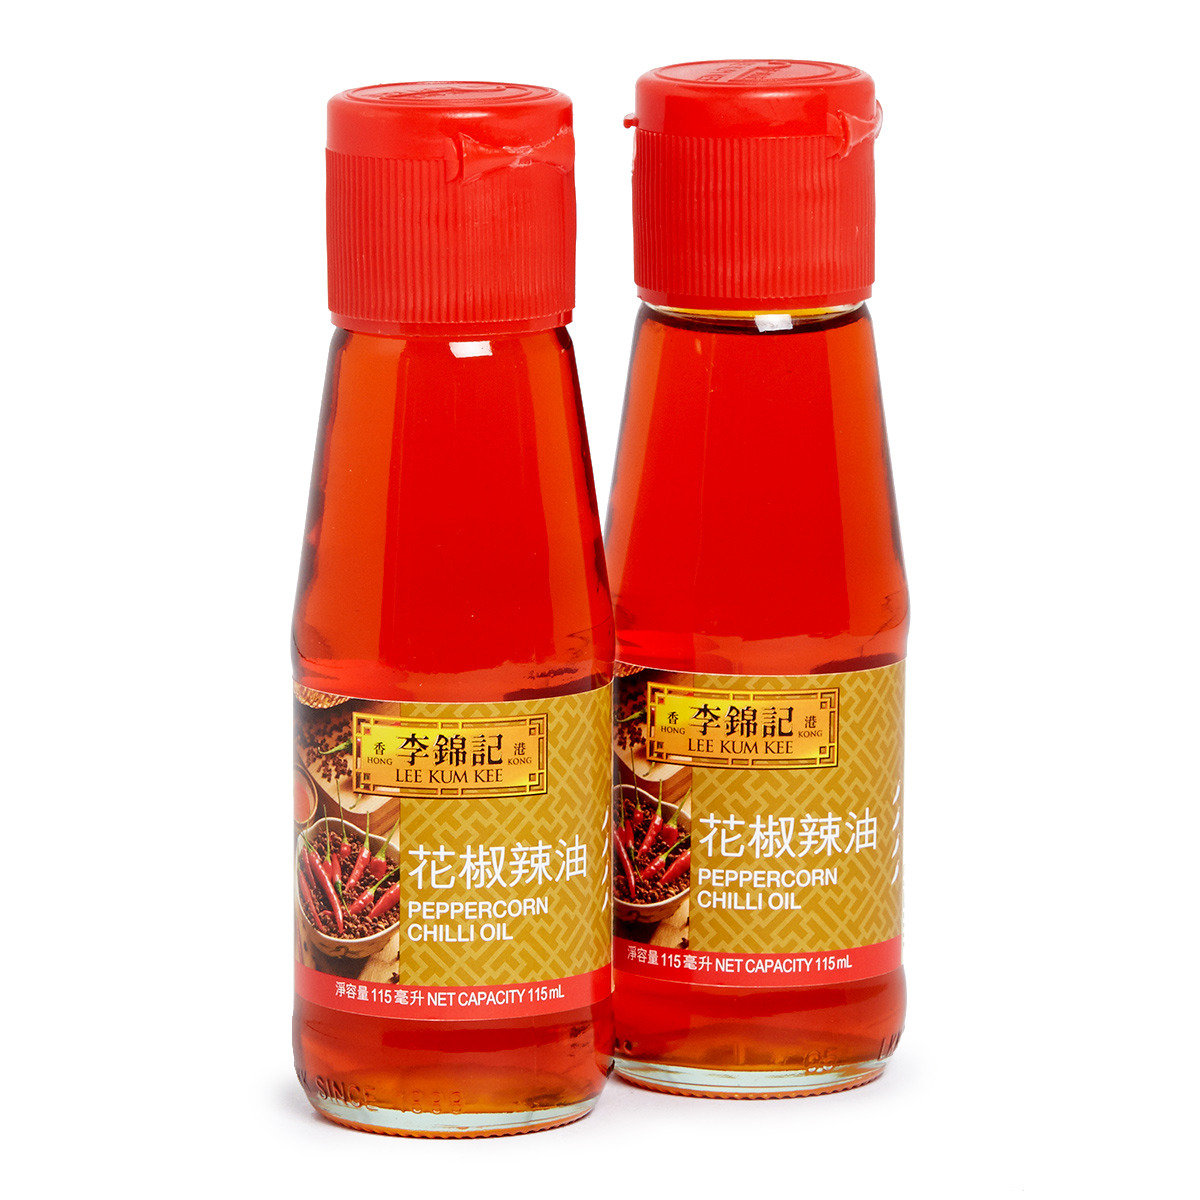 Peppercorn Chili Oil